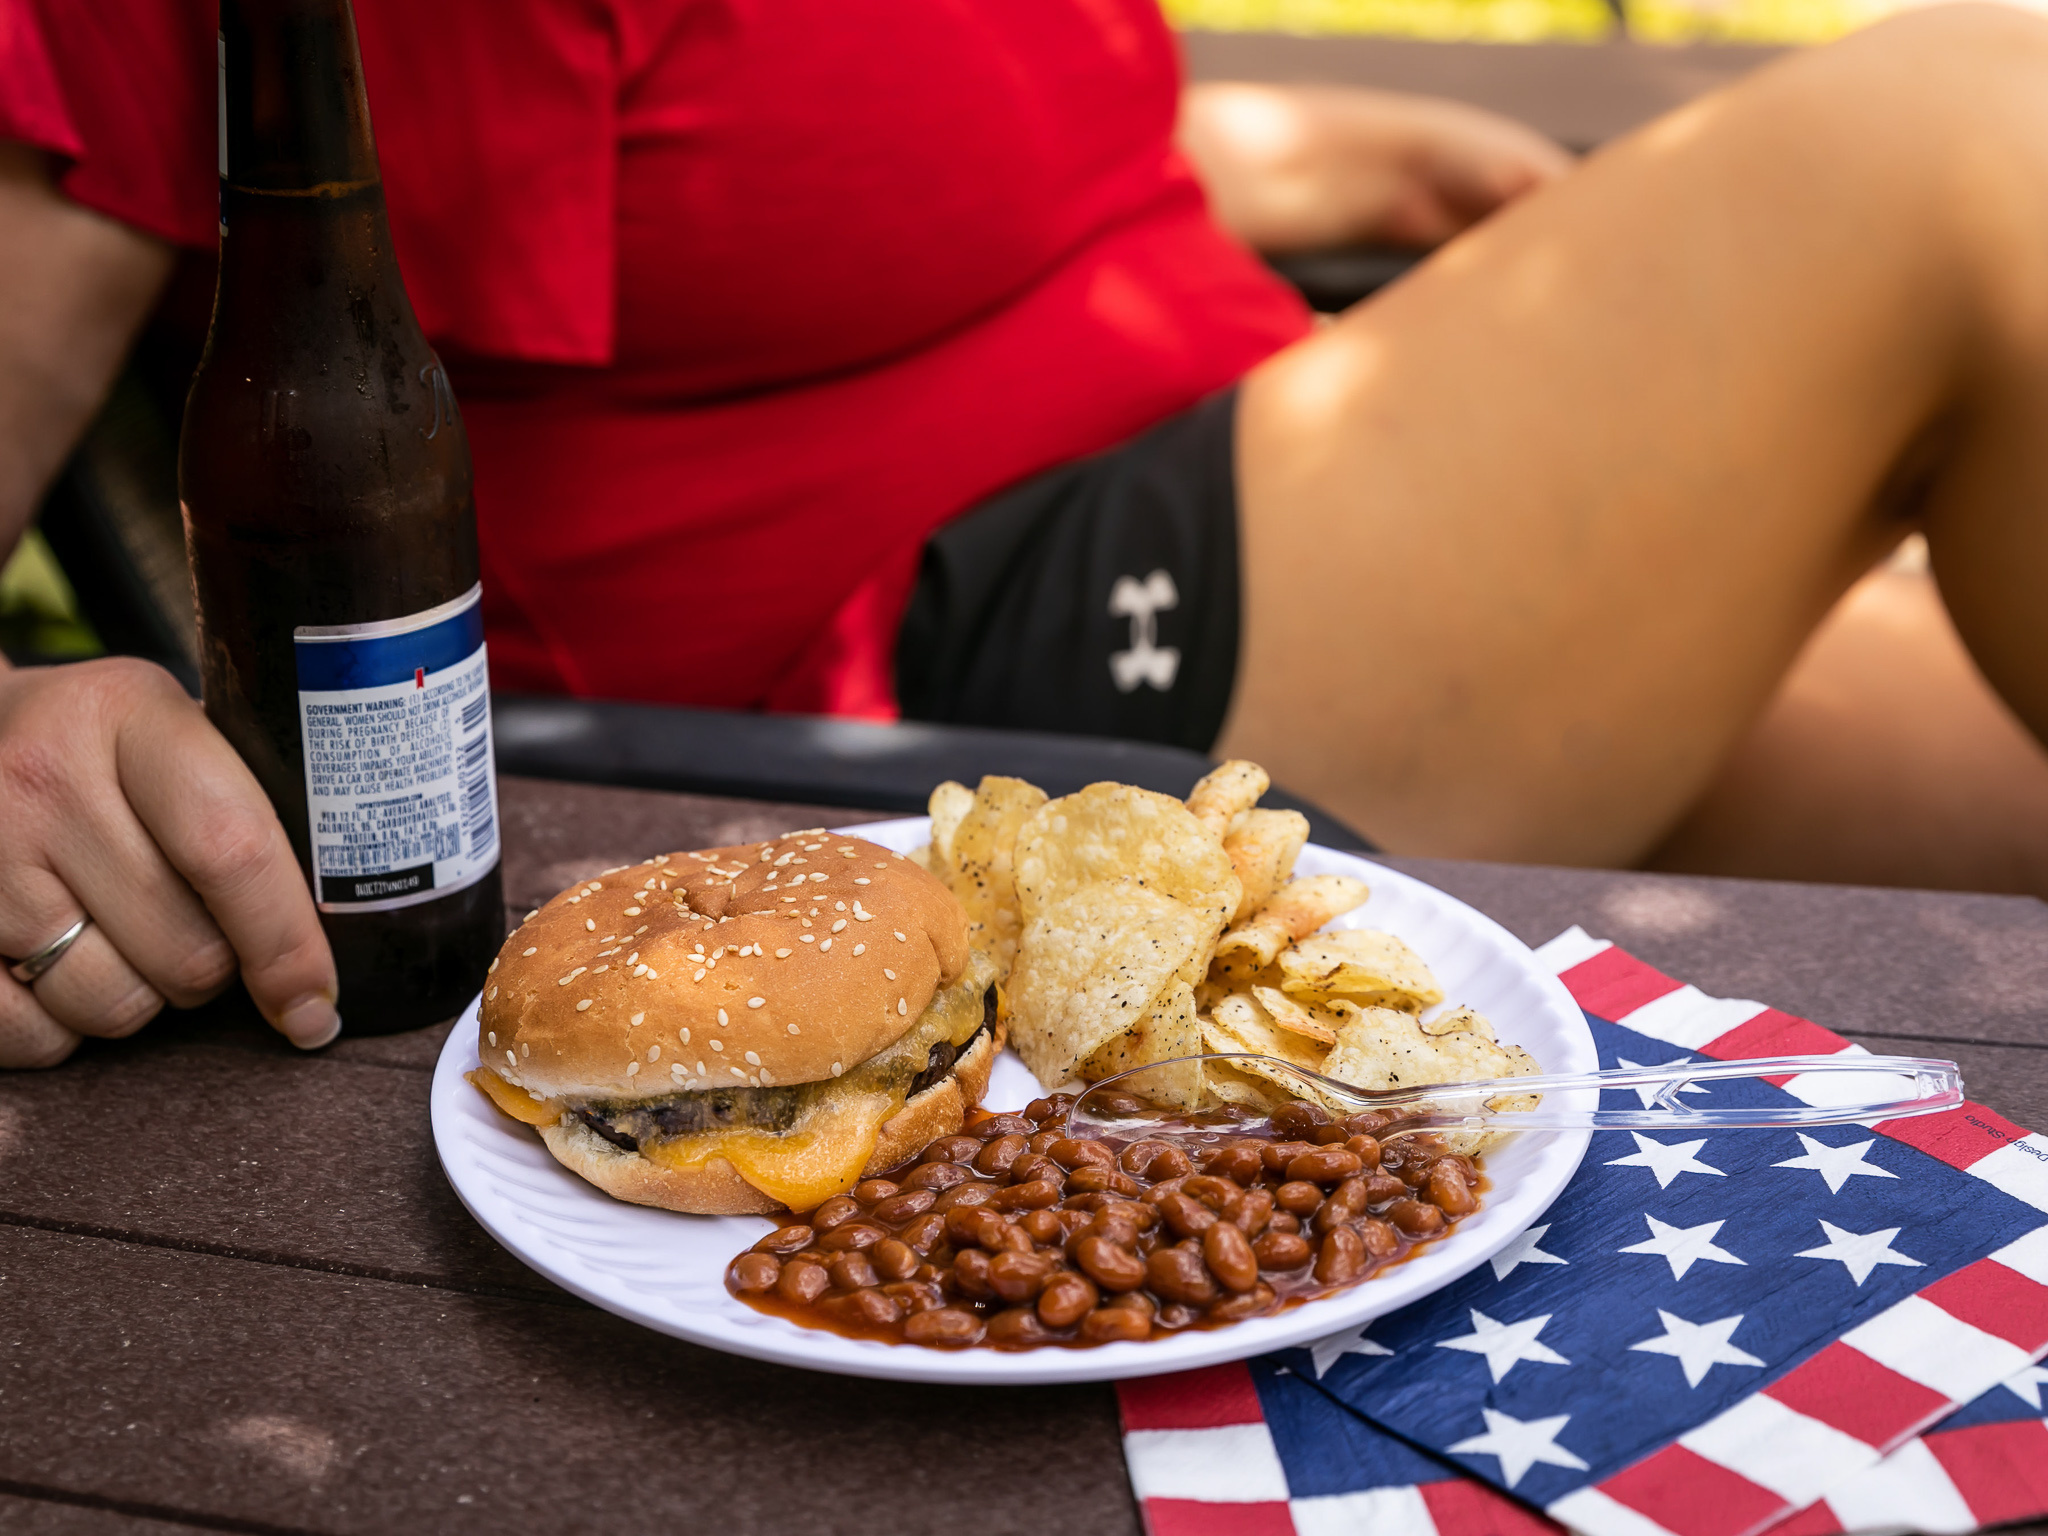 Pick Up Brooklyn Burgers Steakhouse Burgers For Your July 4th Celebration - Save Now At Publix on I Heart Publix 1